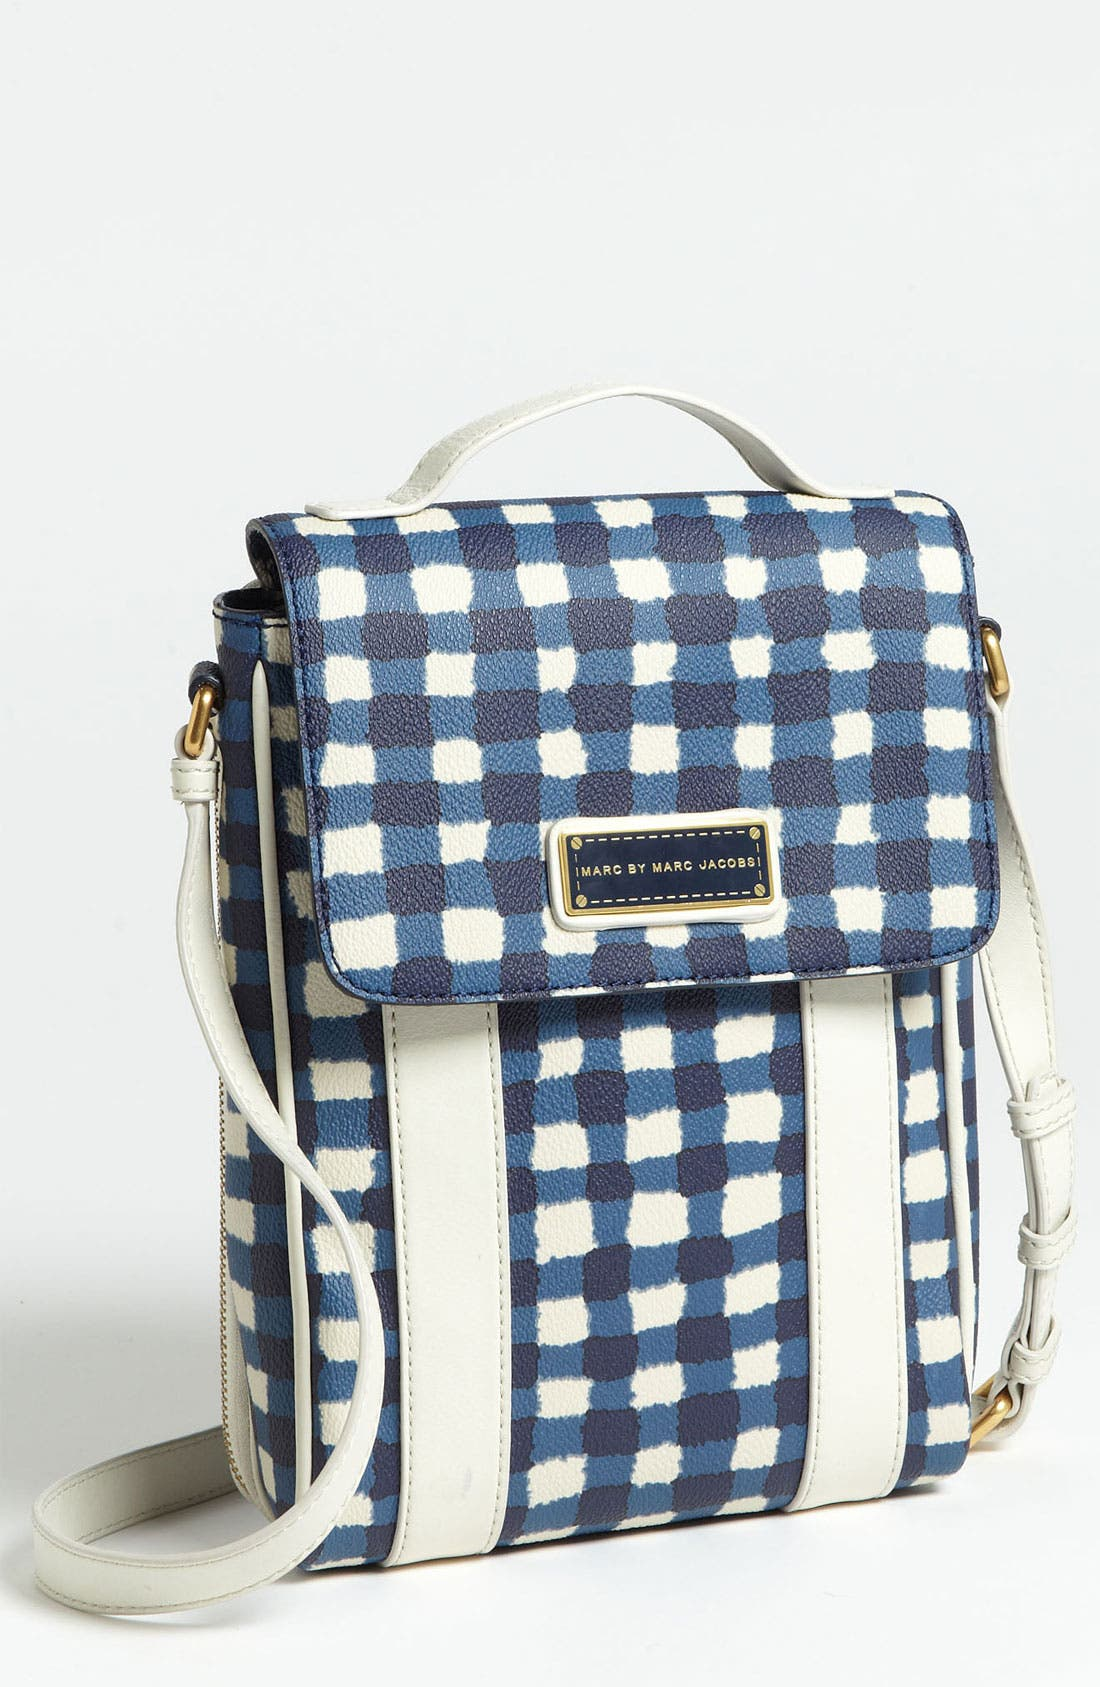 Main Image - MARC BY MARC JACOBS 'Marc'd & Check'd' Print Tablet Crossbody Bag